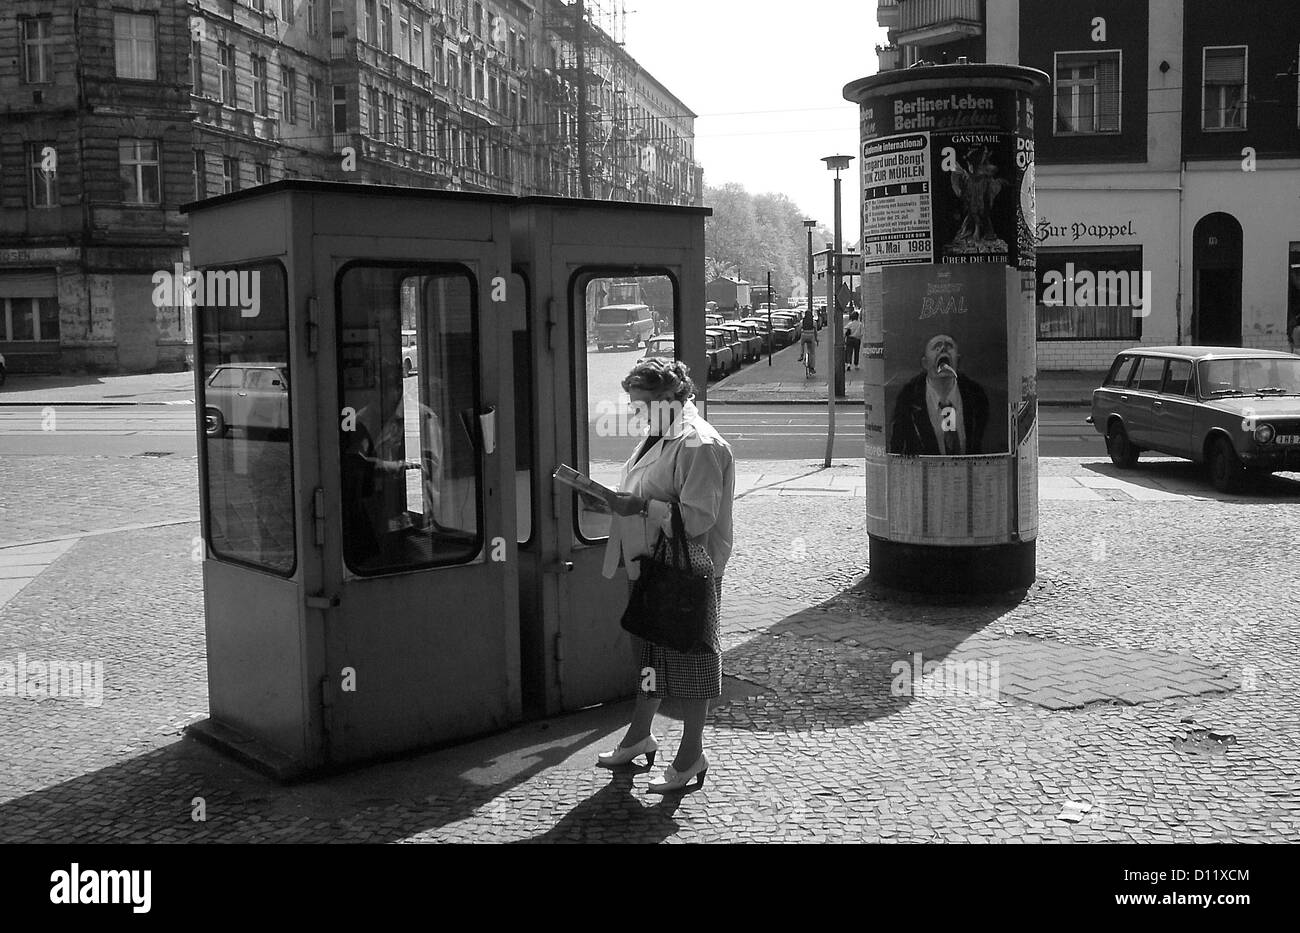 Berlin, GDR, a woman stands in front of phone booths in Prenzlauer Berg - Stock Image